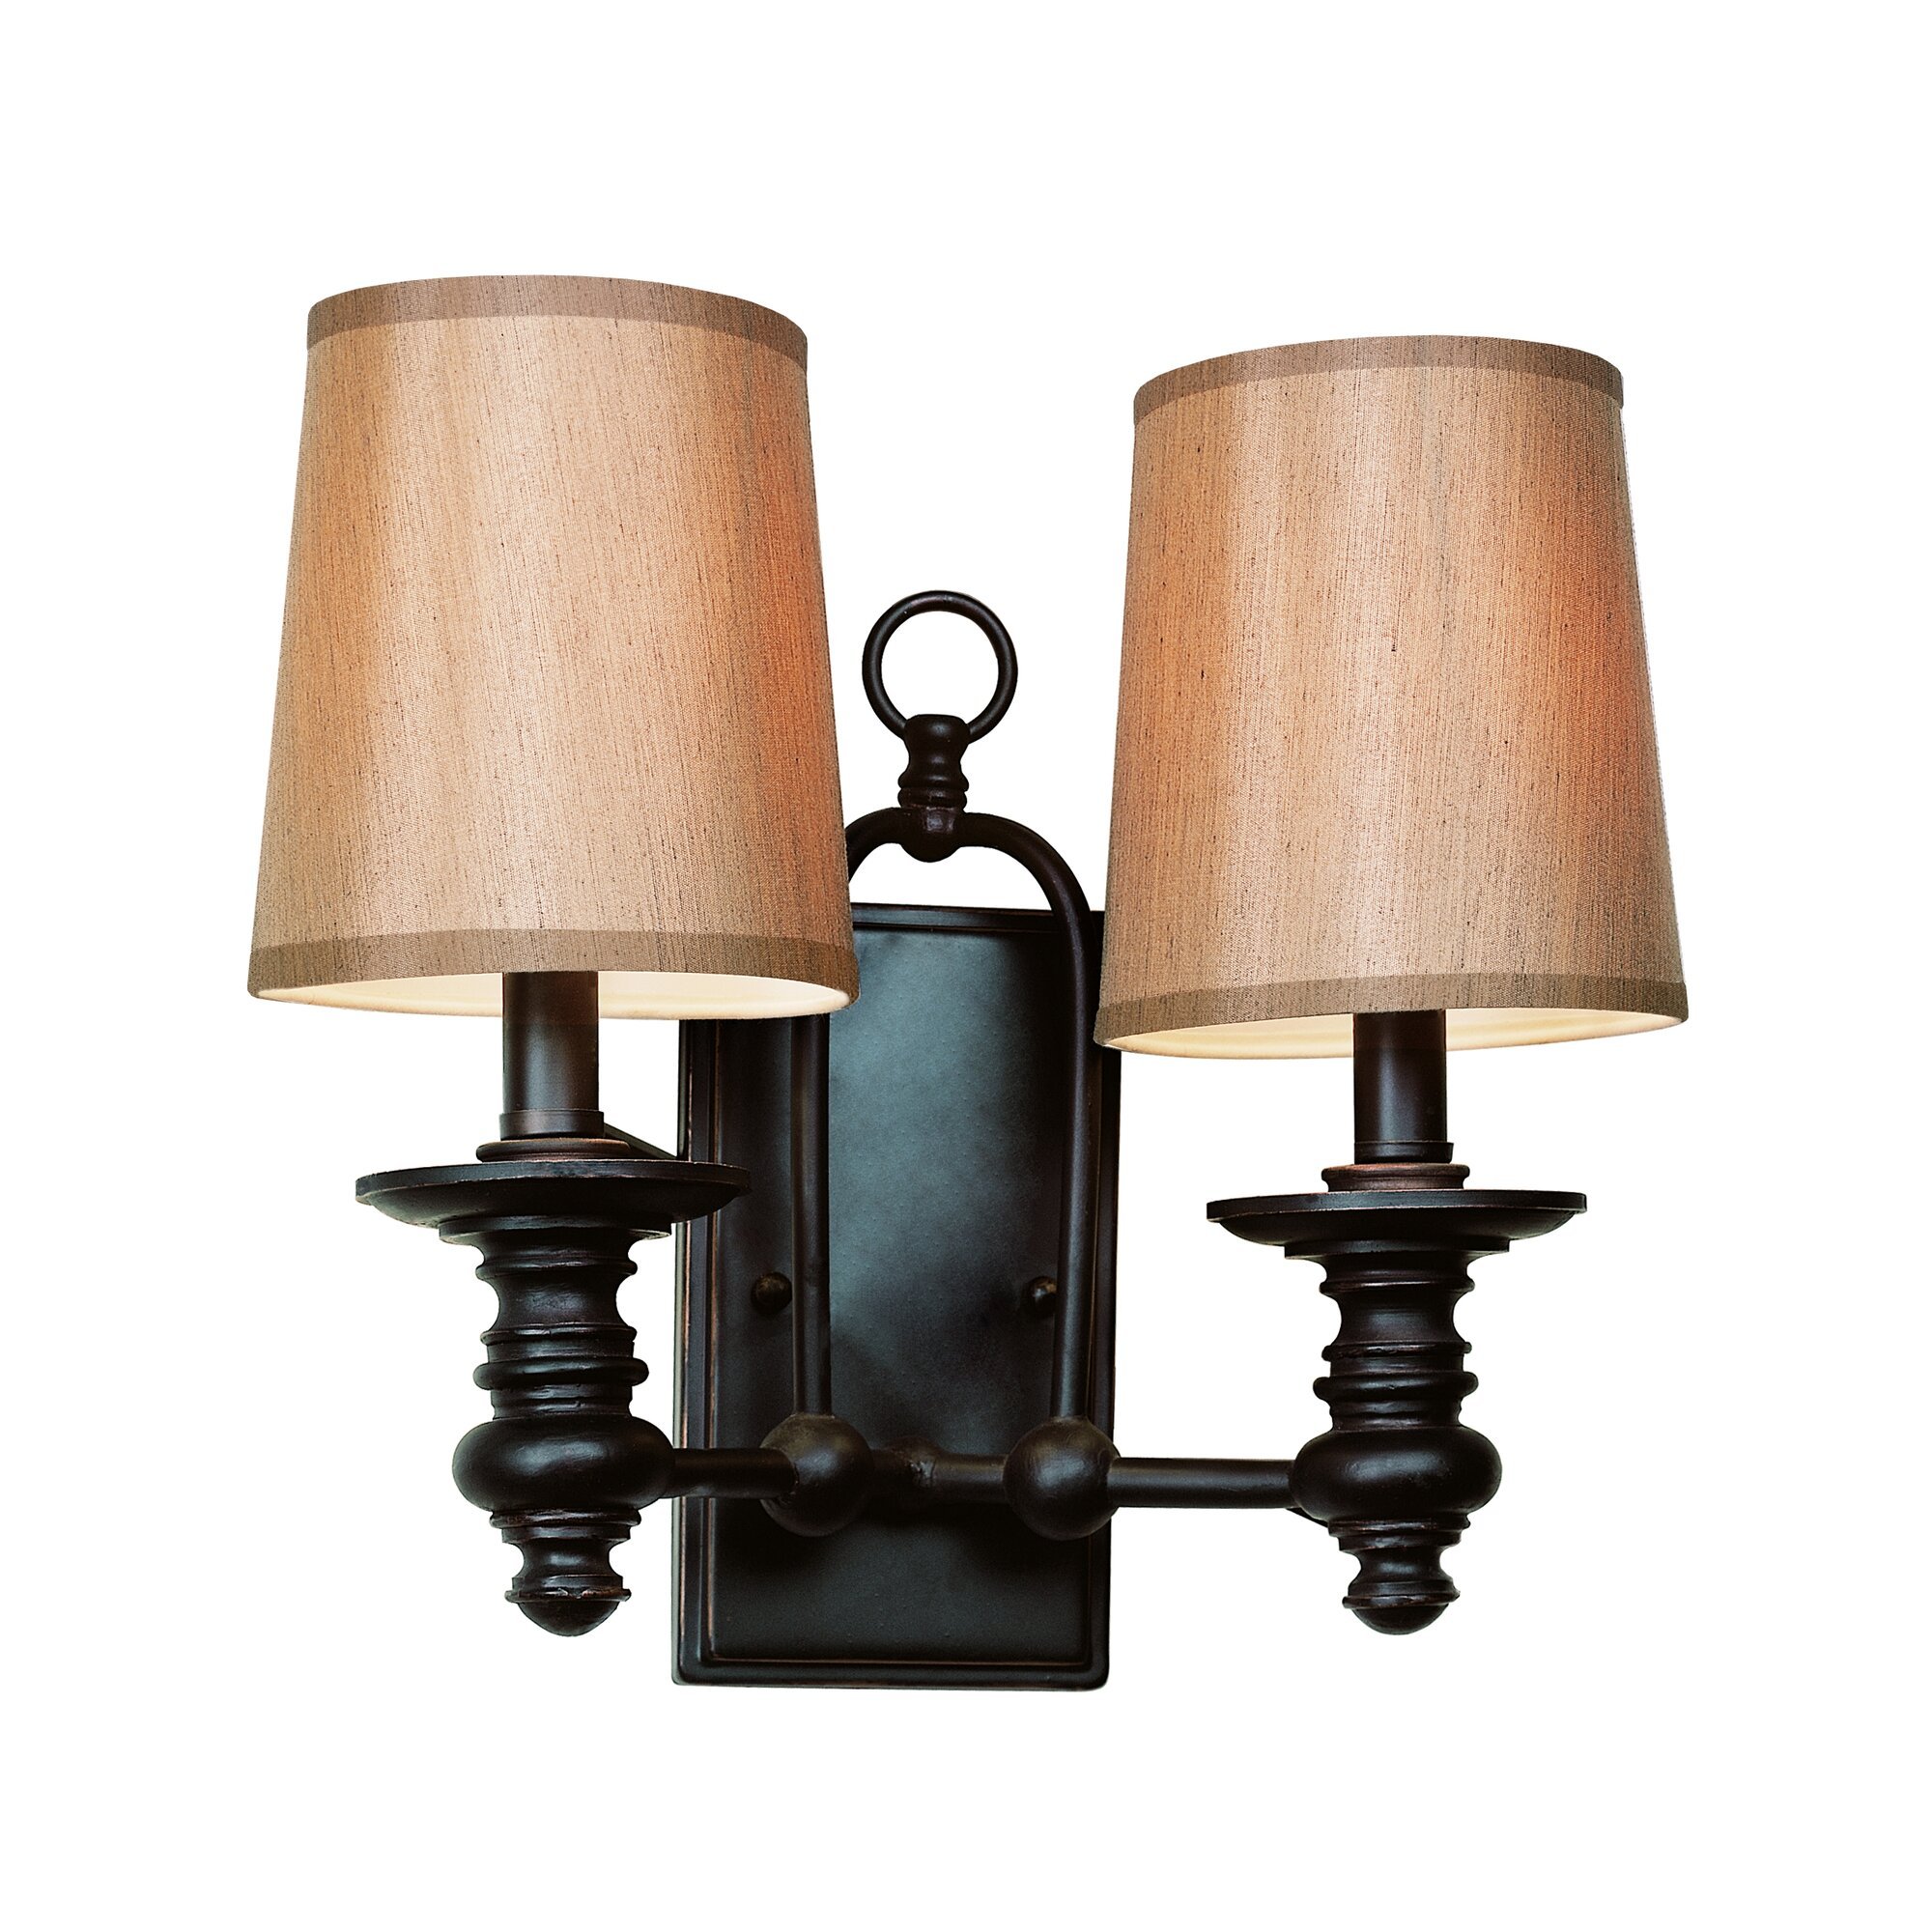 Traditional Wall Sconce With Switch : TransGlobe Lighting Modern Meets Traditional 2-Light Wall Sconce & Reviews Wayfair